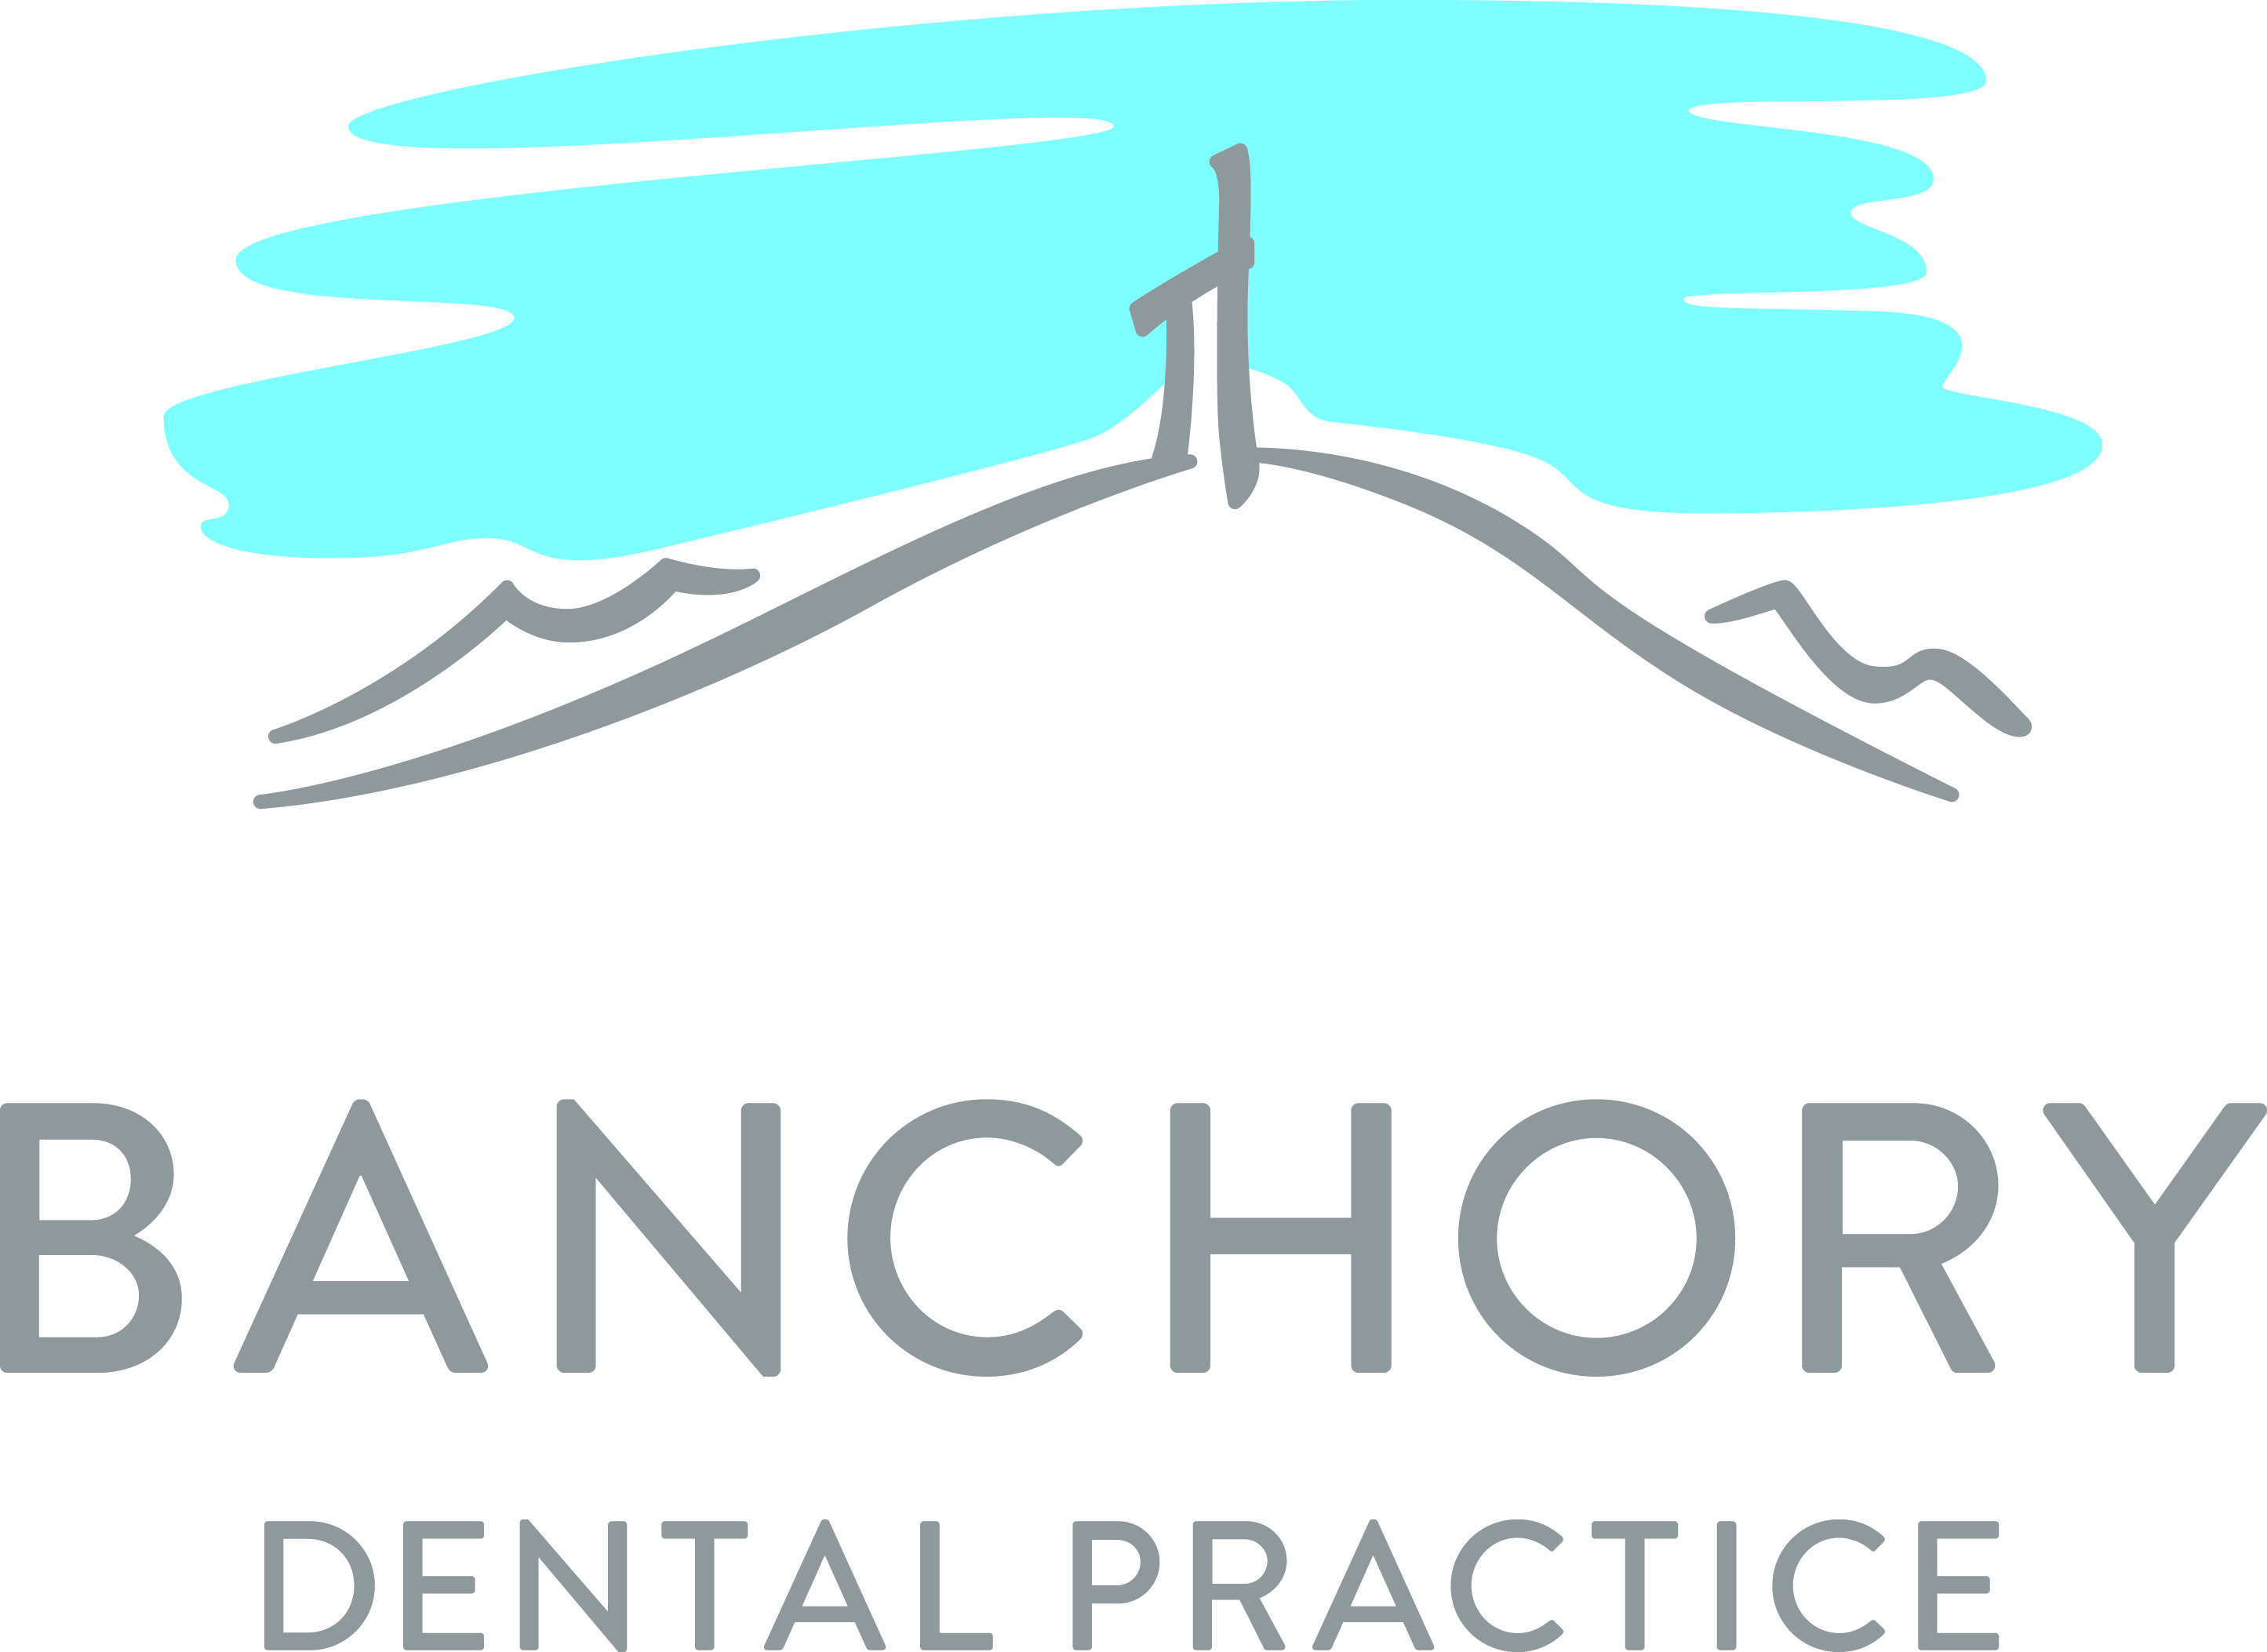 Banchory Dental Practice